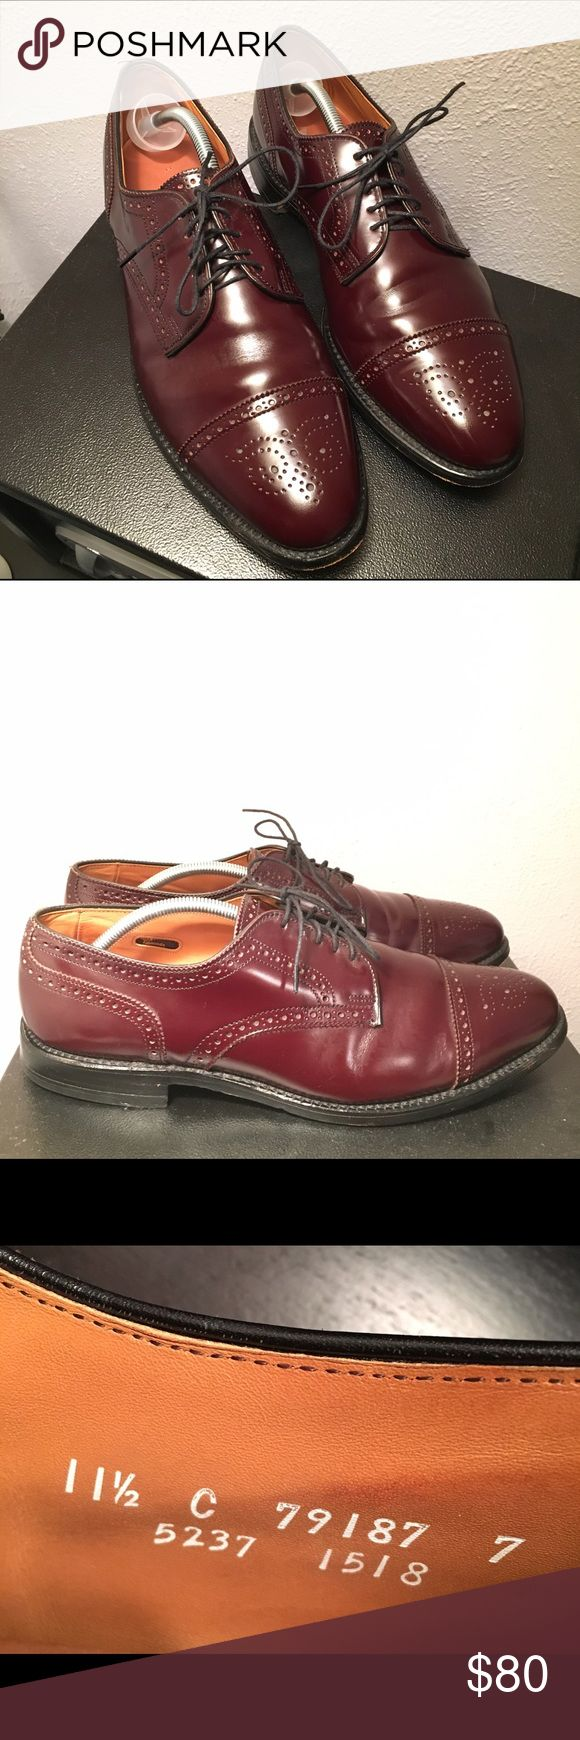 Allen Edmonds Sanford Burgundy Cap Toe Shoes Allen Edmonds Sanford Cap Toe lace up shoes. Burgundy color. Size 11.5 E. Allen Edmonds Shoes Oxfords & Derbys